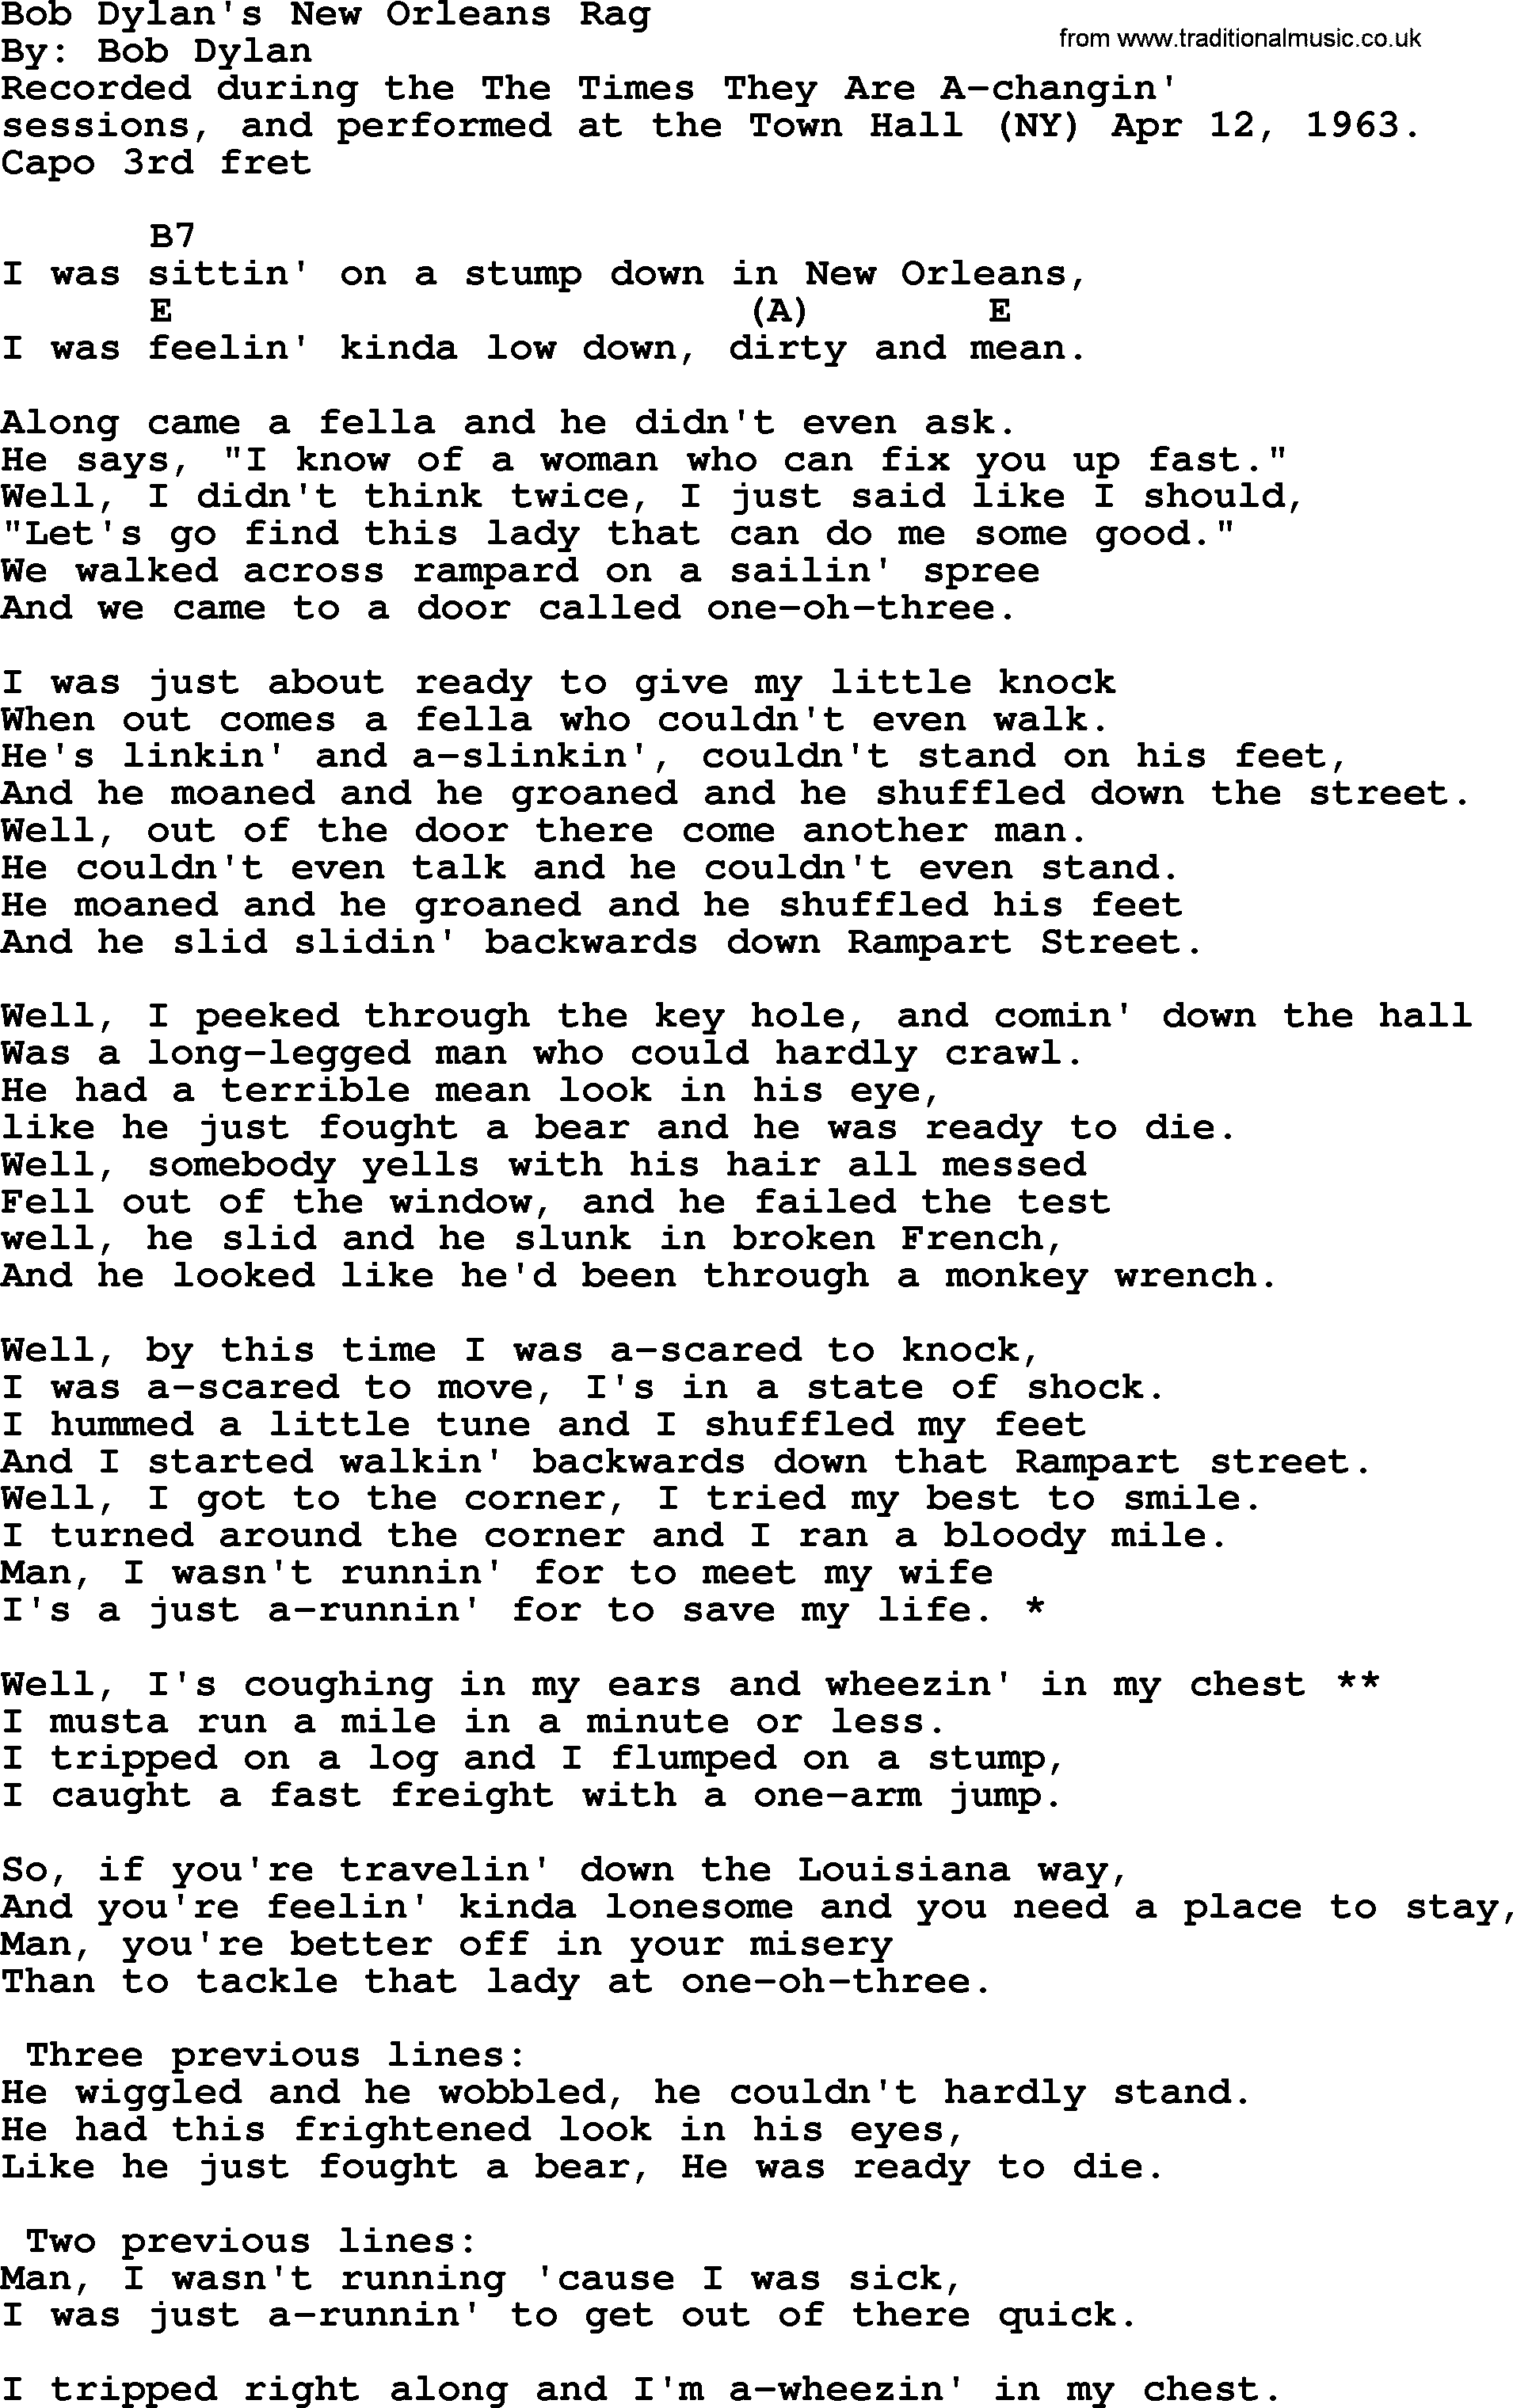 Bob Dylan song - Bob Dylan's New Orleans Rag, lyrics and chords